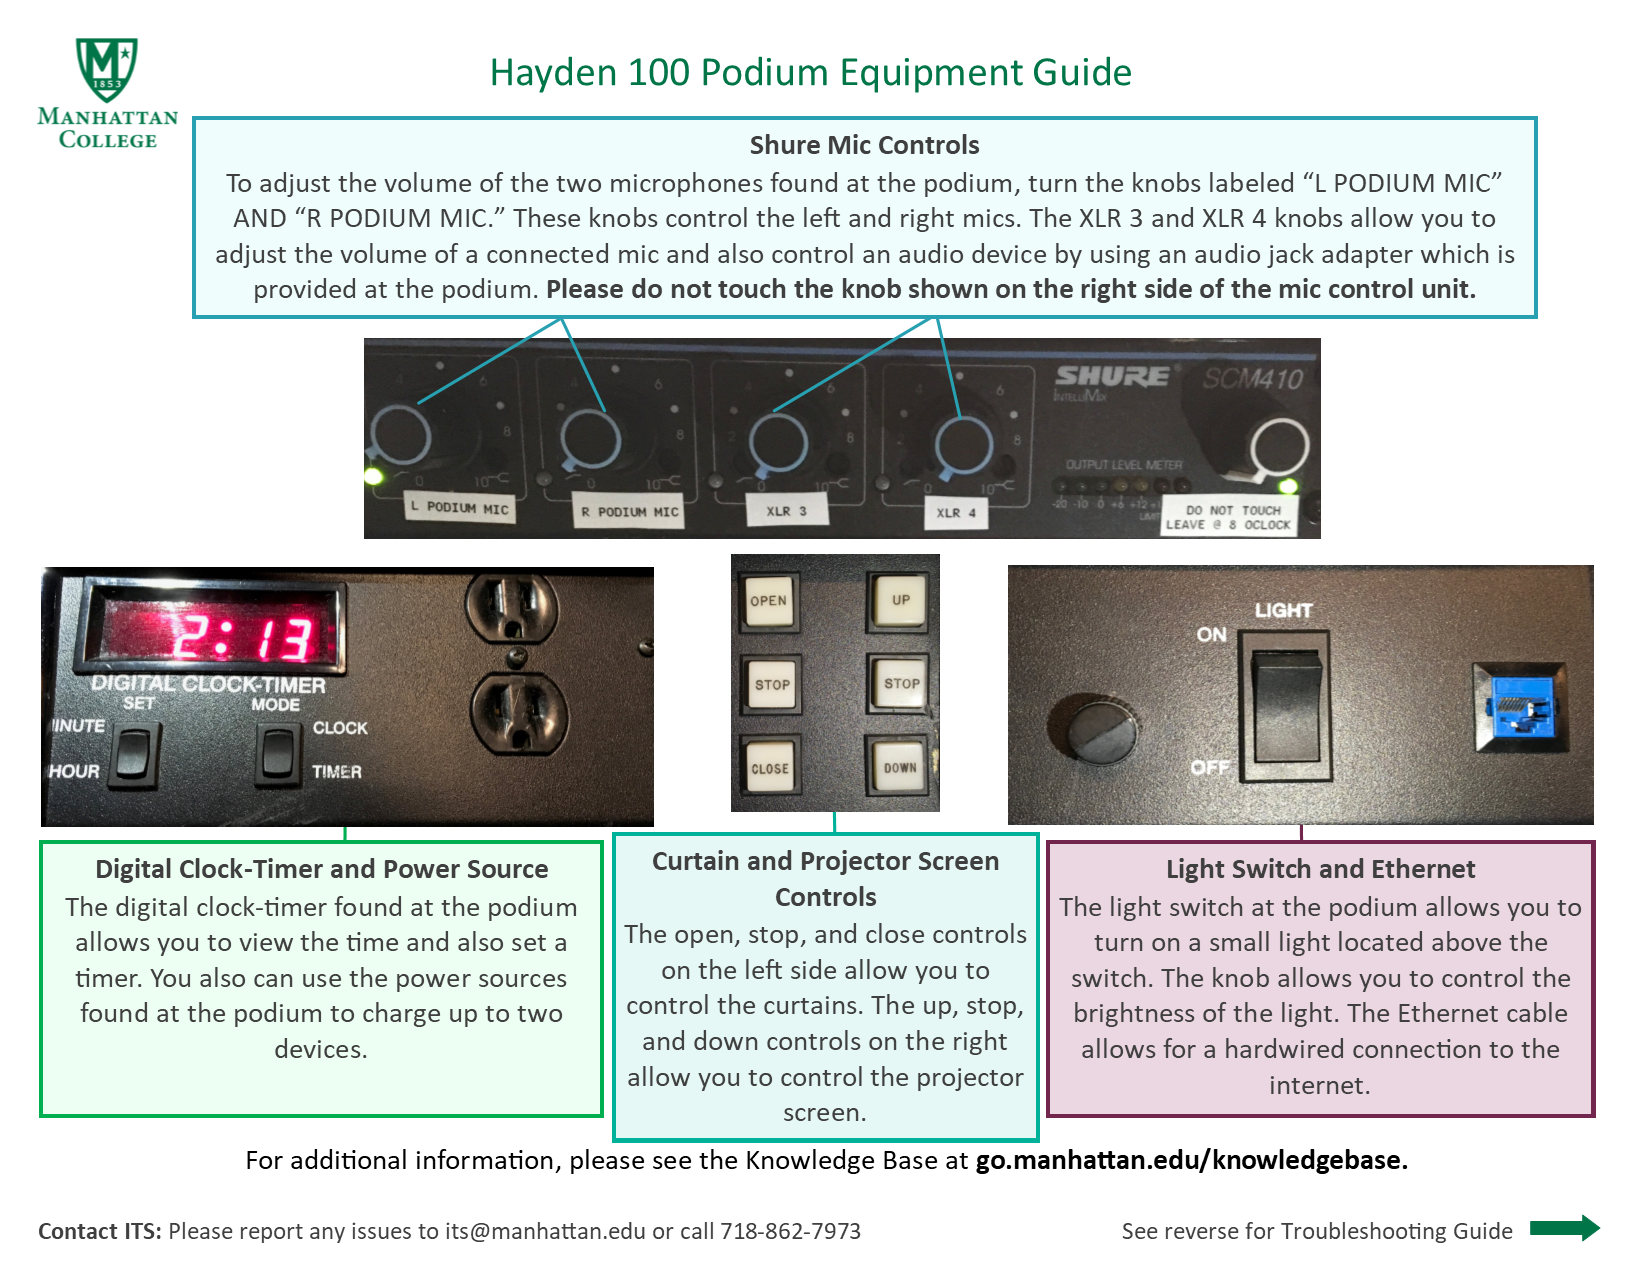 image depicting the back side of the hayden 100 podium guide